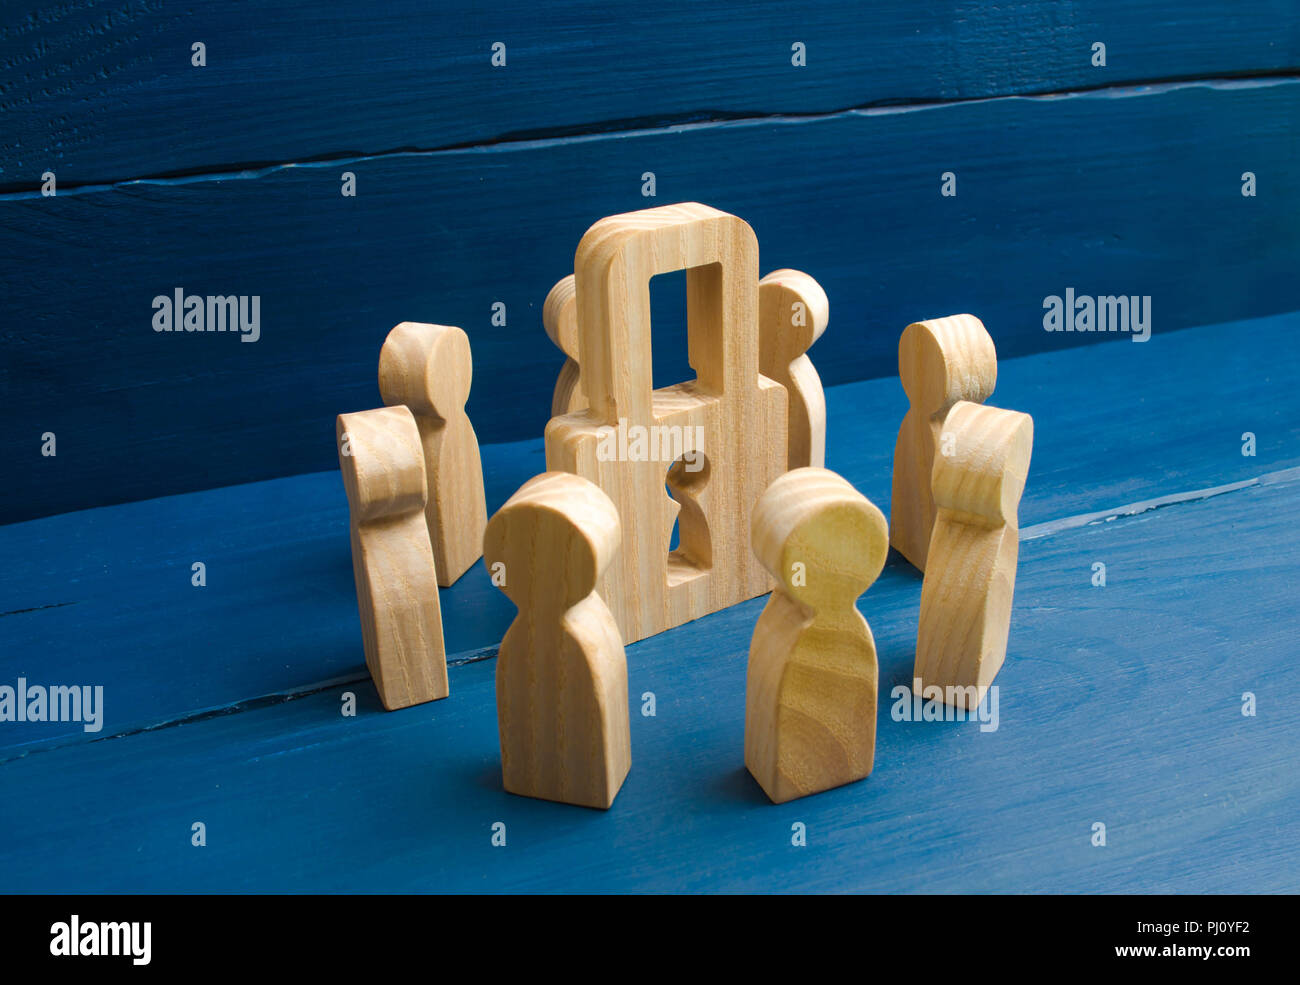 Bank secrecy, medical secret. Wooden figures of people stand around a padlock on a blue background. The concept of security and security, the protecti Stock Photo